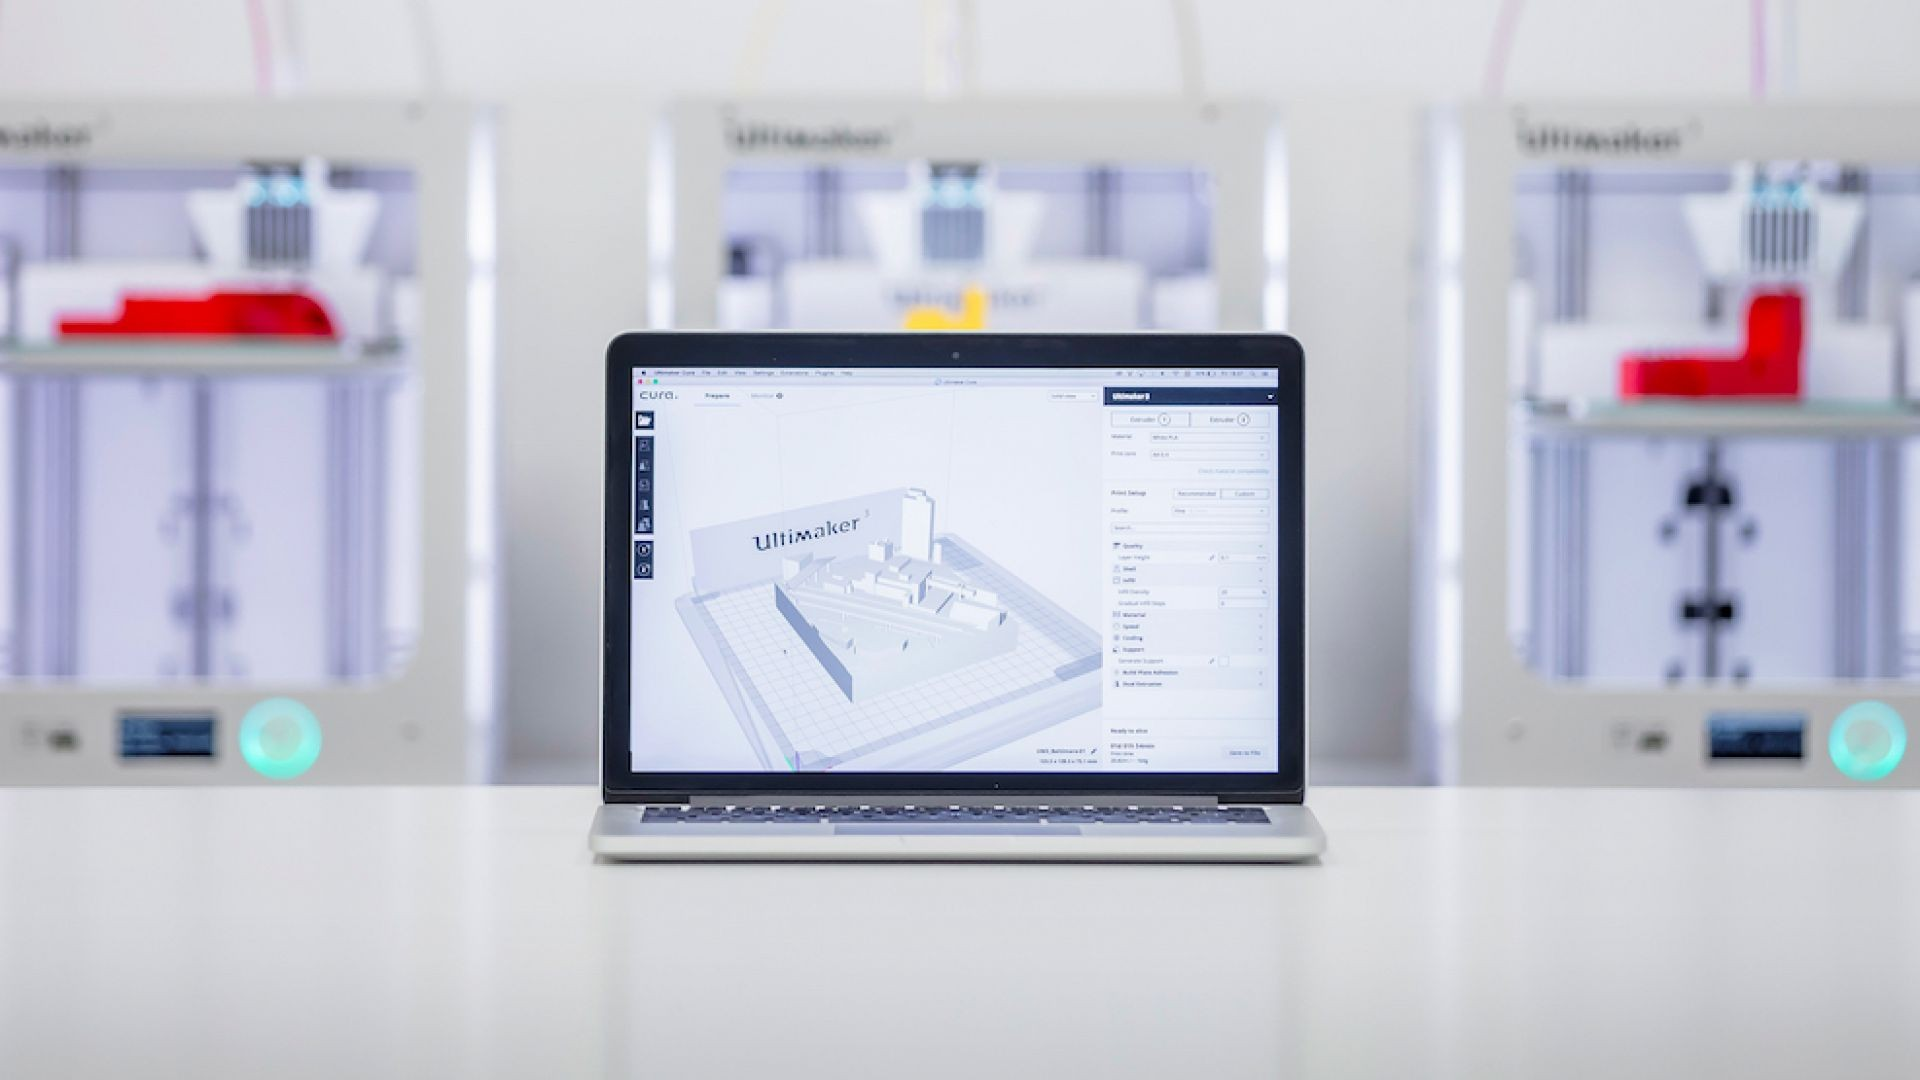 HP connects 3D scanning technology with Ultimaker